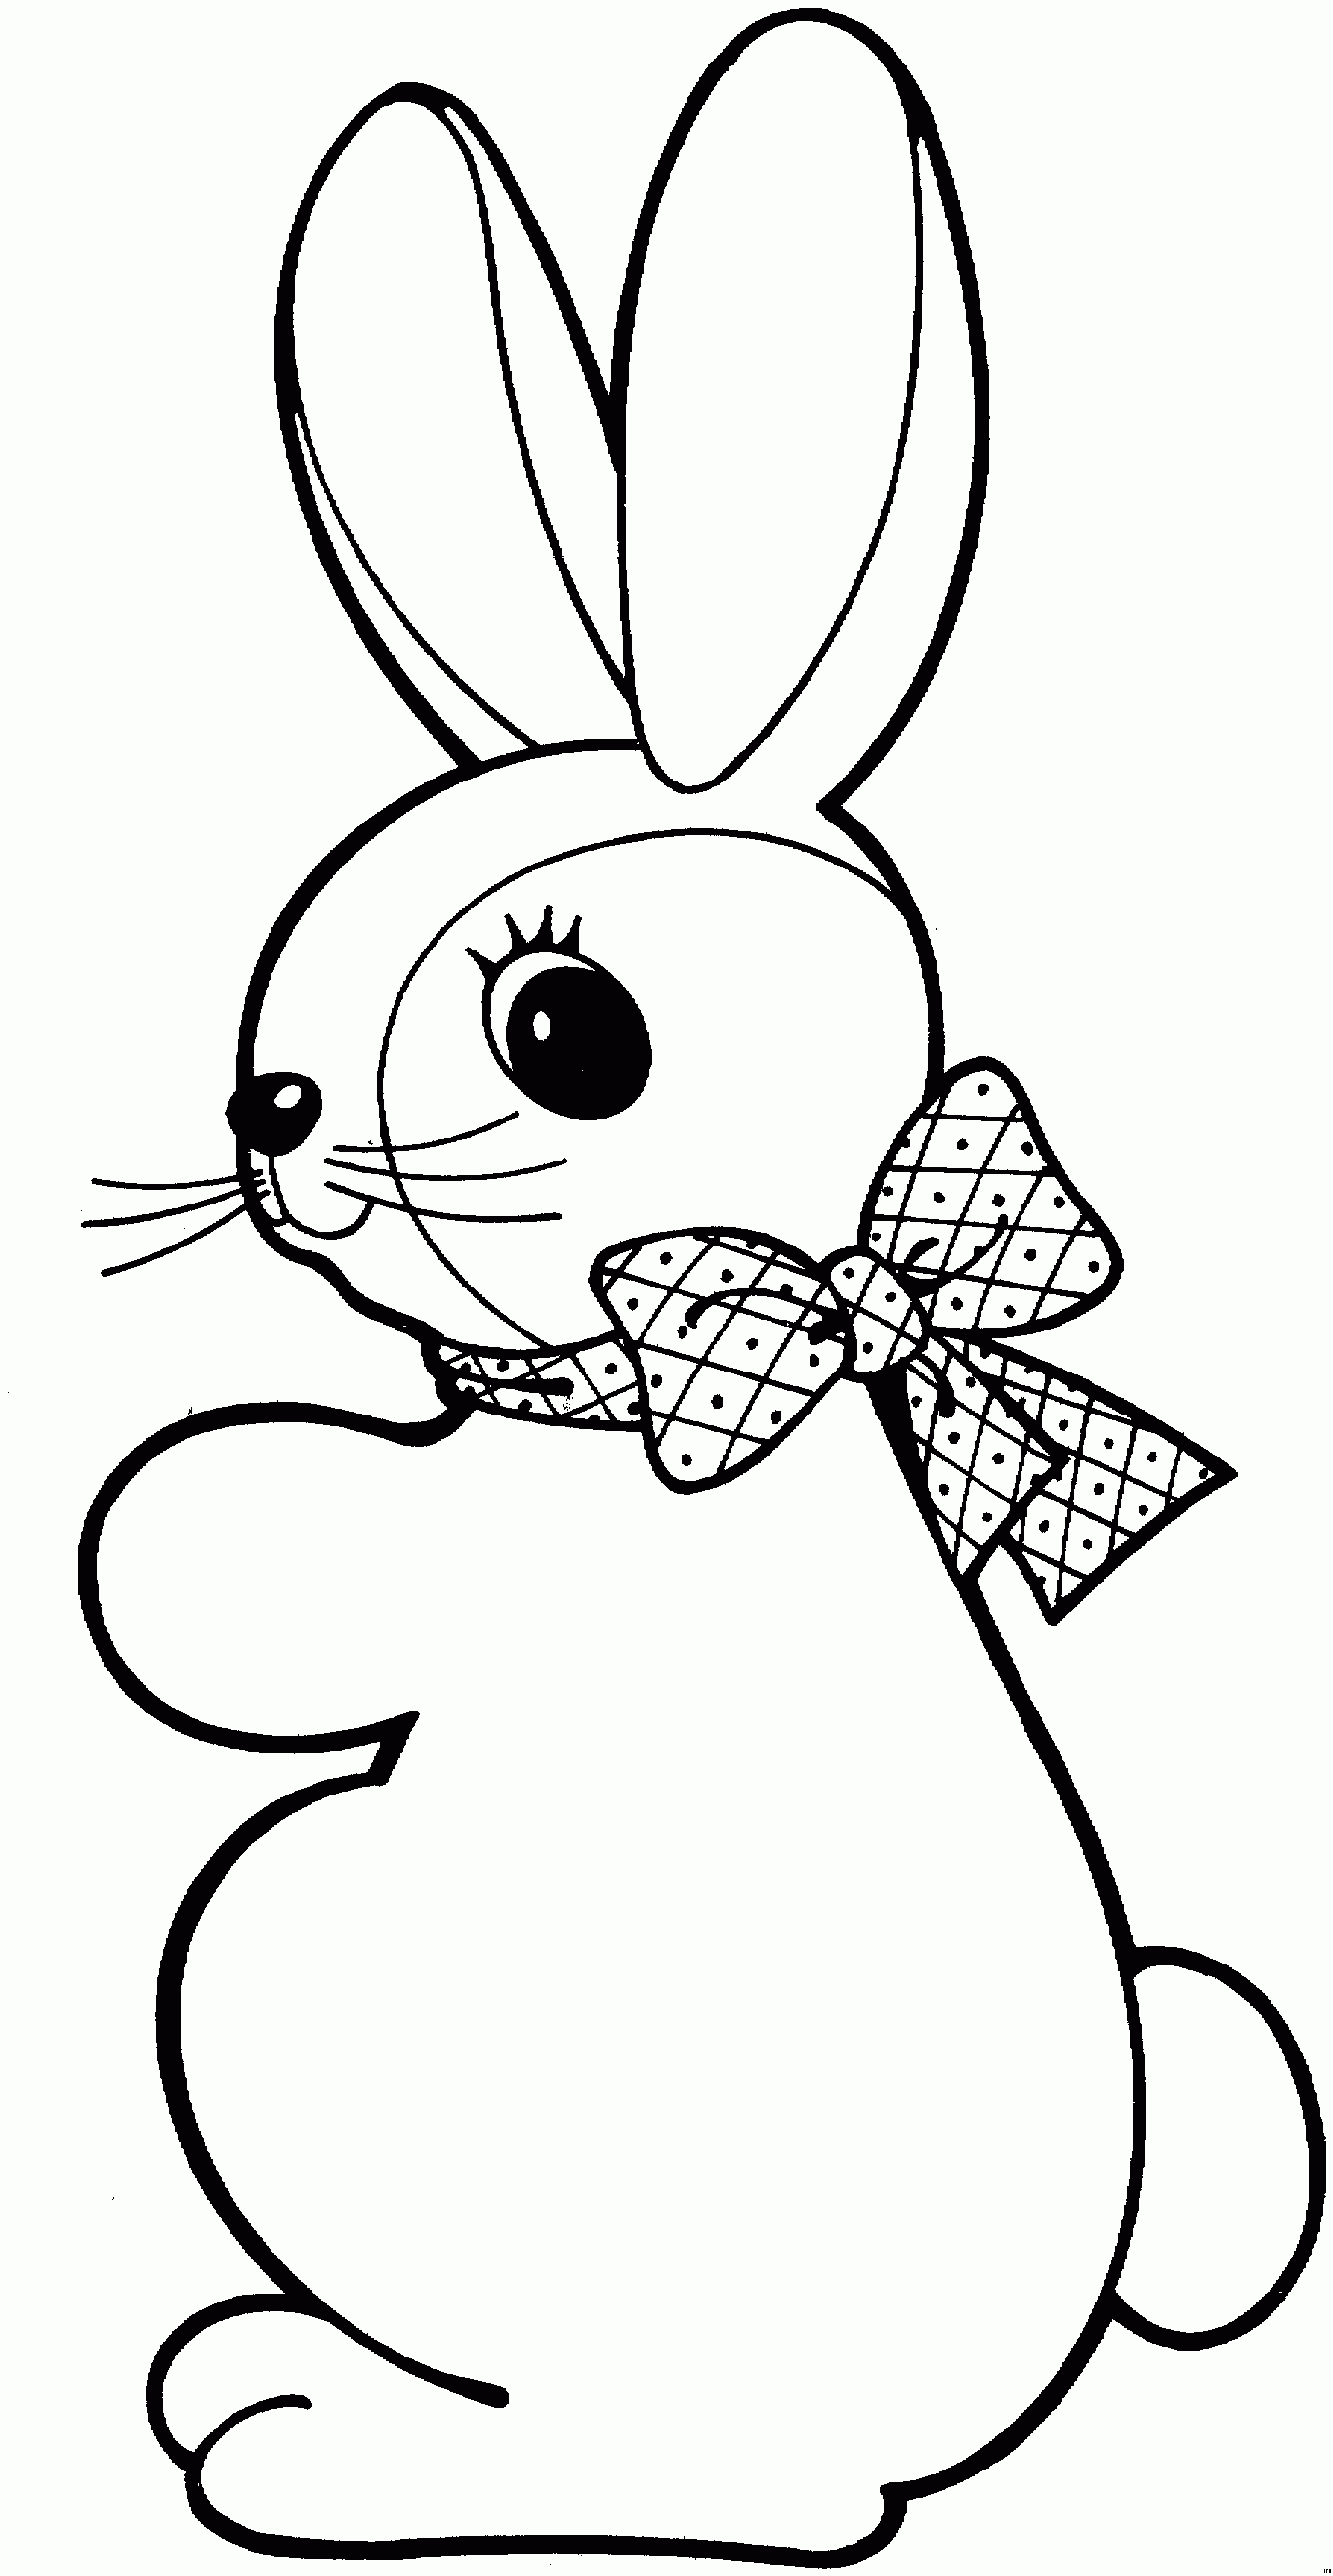 bunny coloring picture baby bunny coloring pages coloring home picture coloring bunny